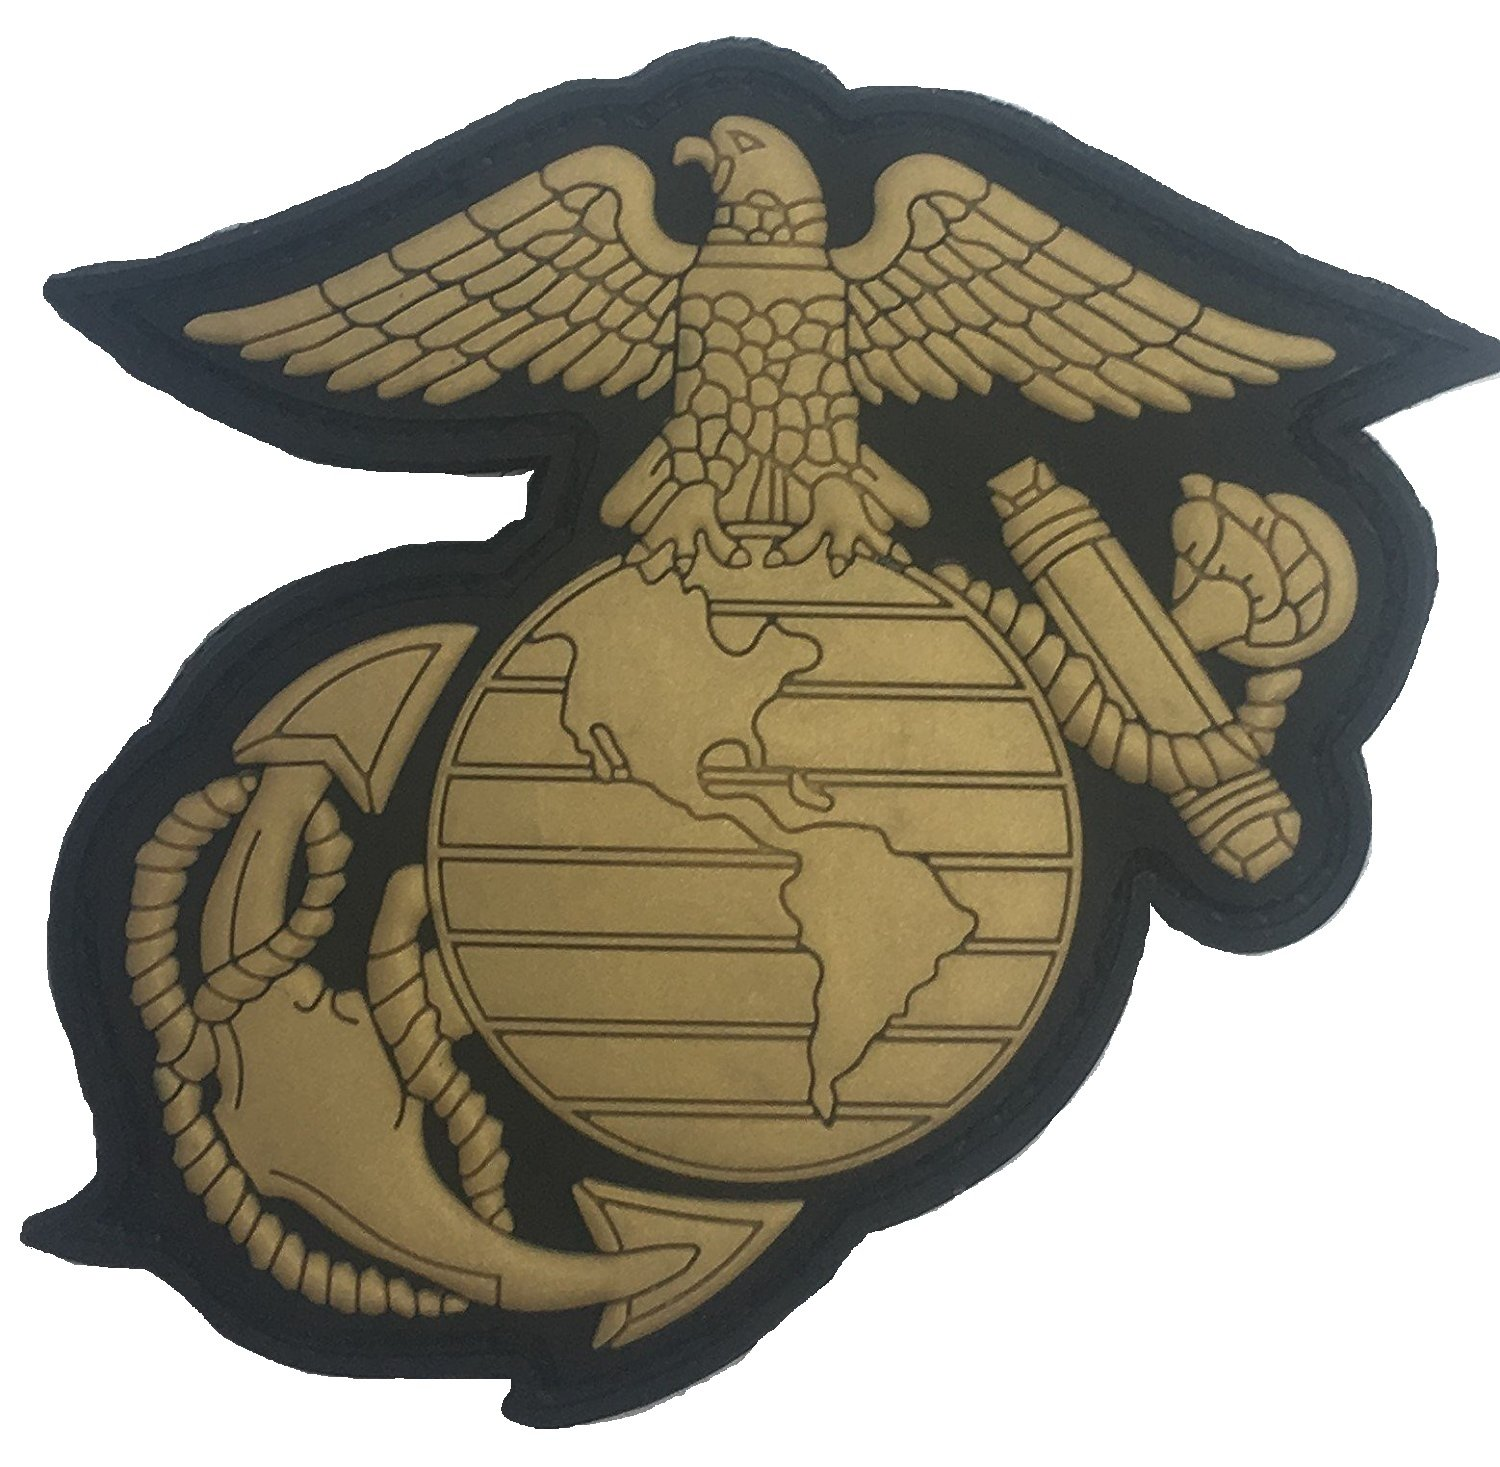 GOLD-BLACK US MARINE CORPS EAGLE GLOBE & ANCHOR PVC PATCH Saber Torch